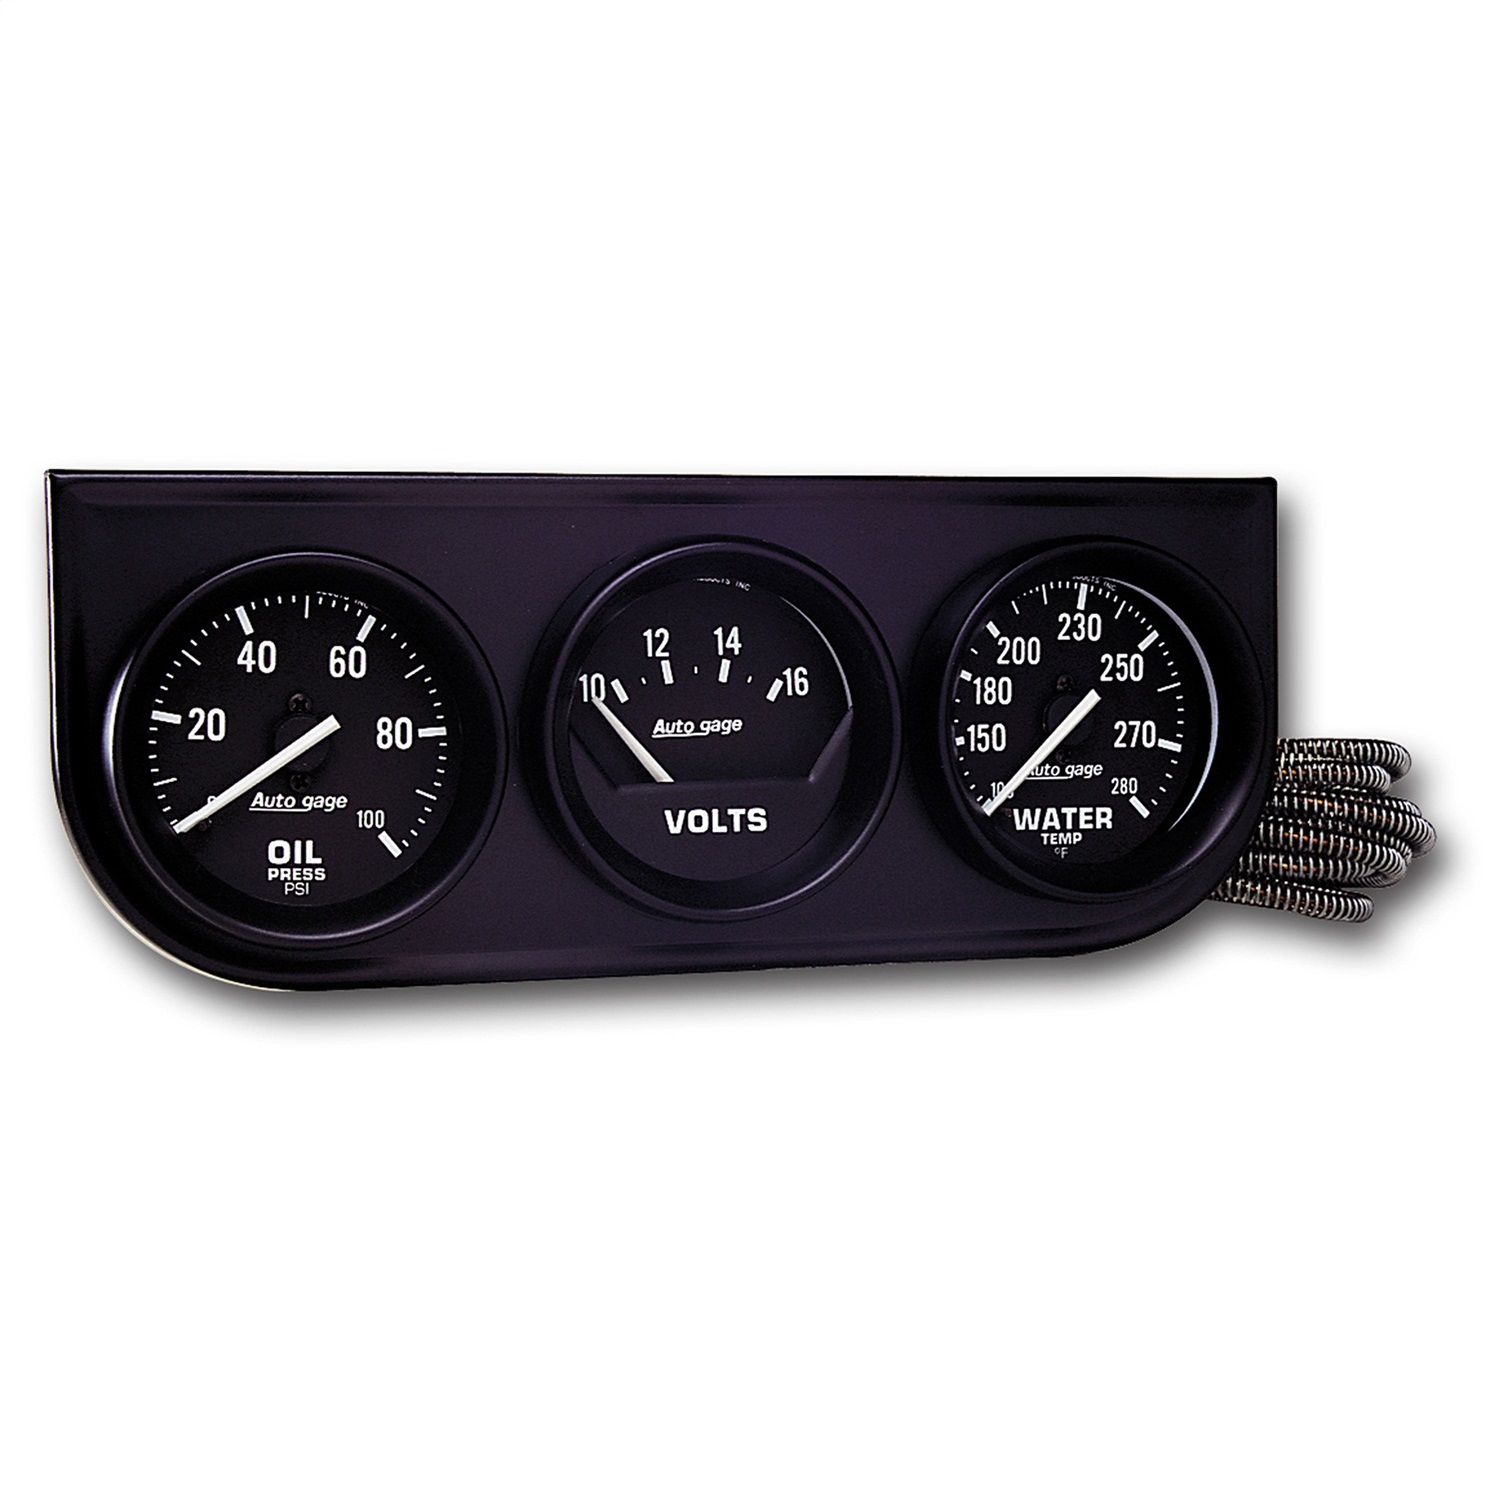 AUTO METER 2397 2IN 3 GAUGE CONSOLE, OIL/ WATER/VOLT, MECH, BLACK